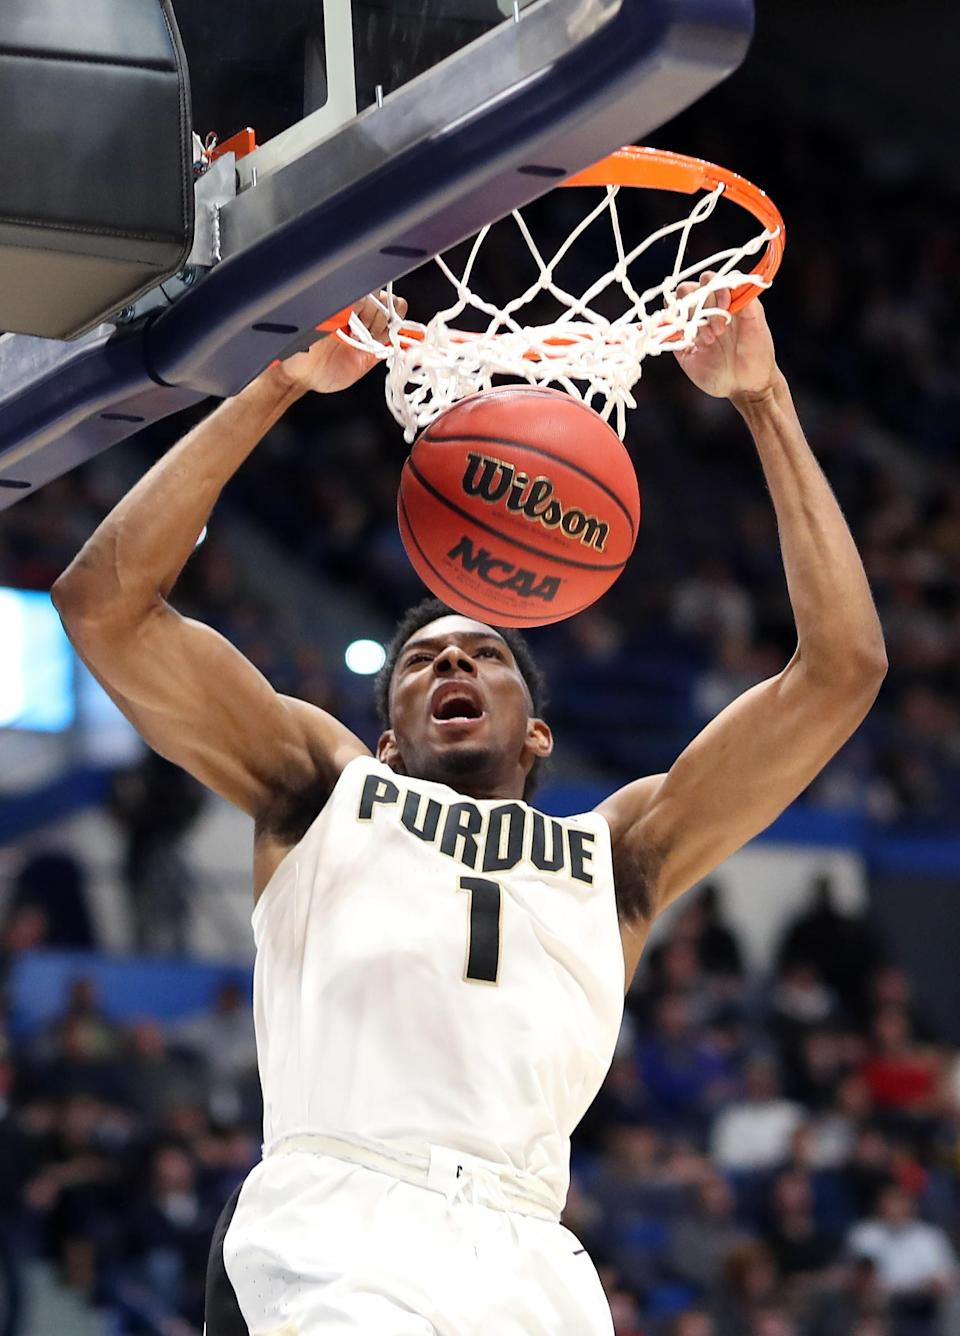 <p>Aaron Wheeler #1 of the Purdue Boilermakers dunks in the first half against the Old Dominion Monarchs during the 2019 NCAA Men's Basketball Tournament at XL Center on March 21, 2019 in Hartford, Connecticut. </p>